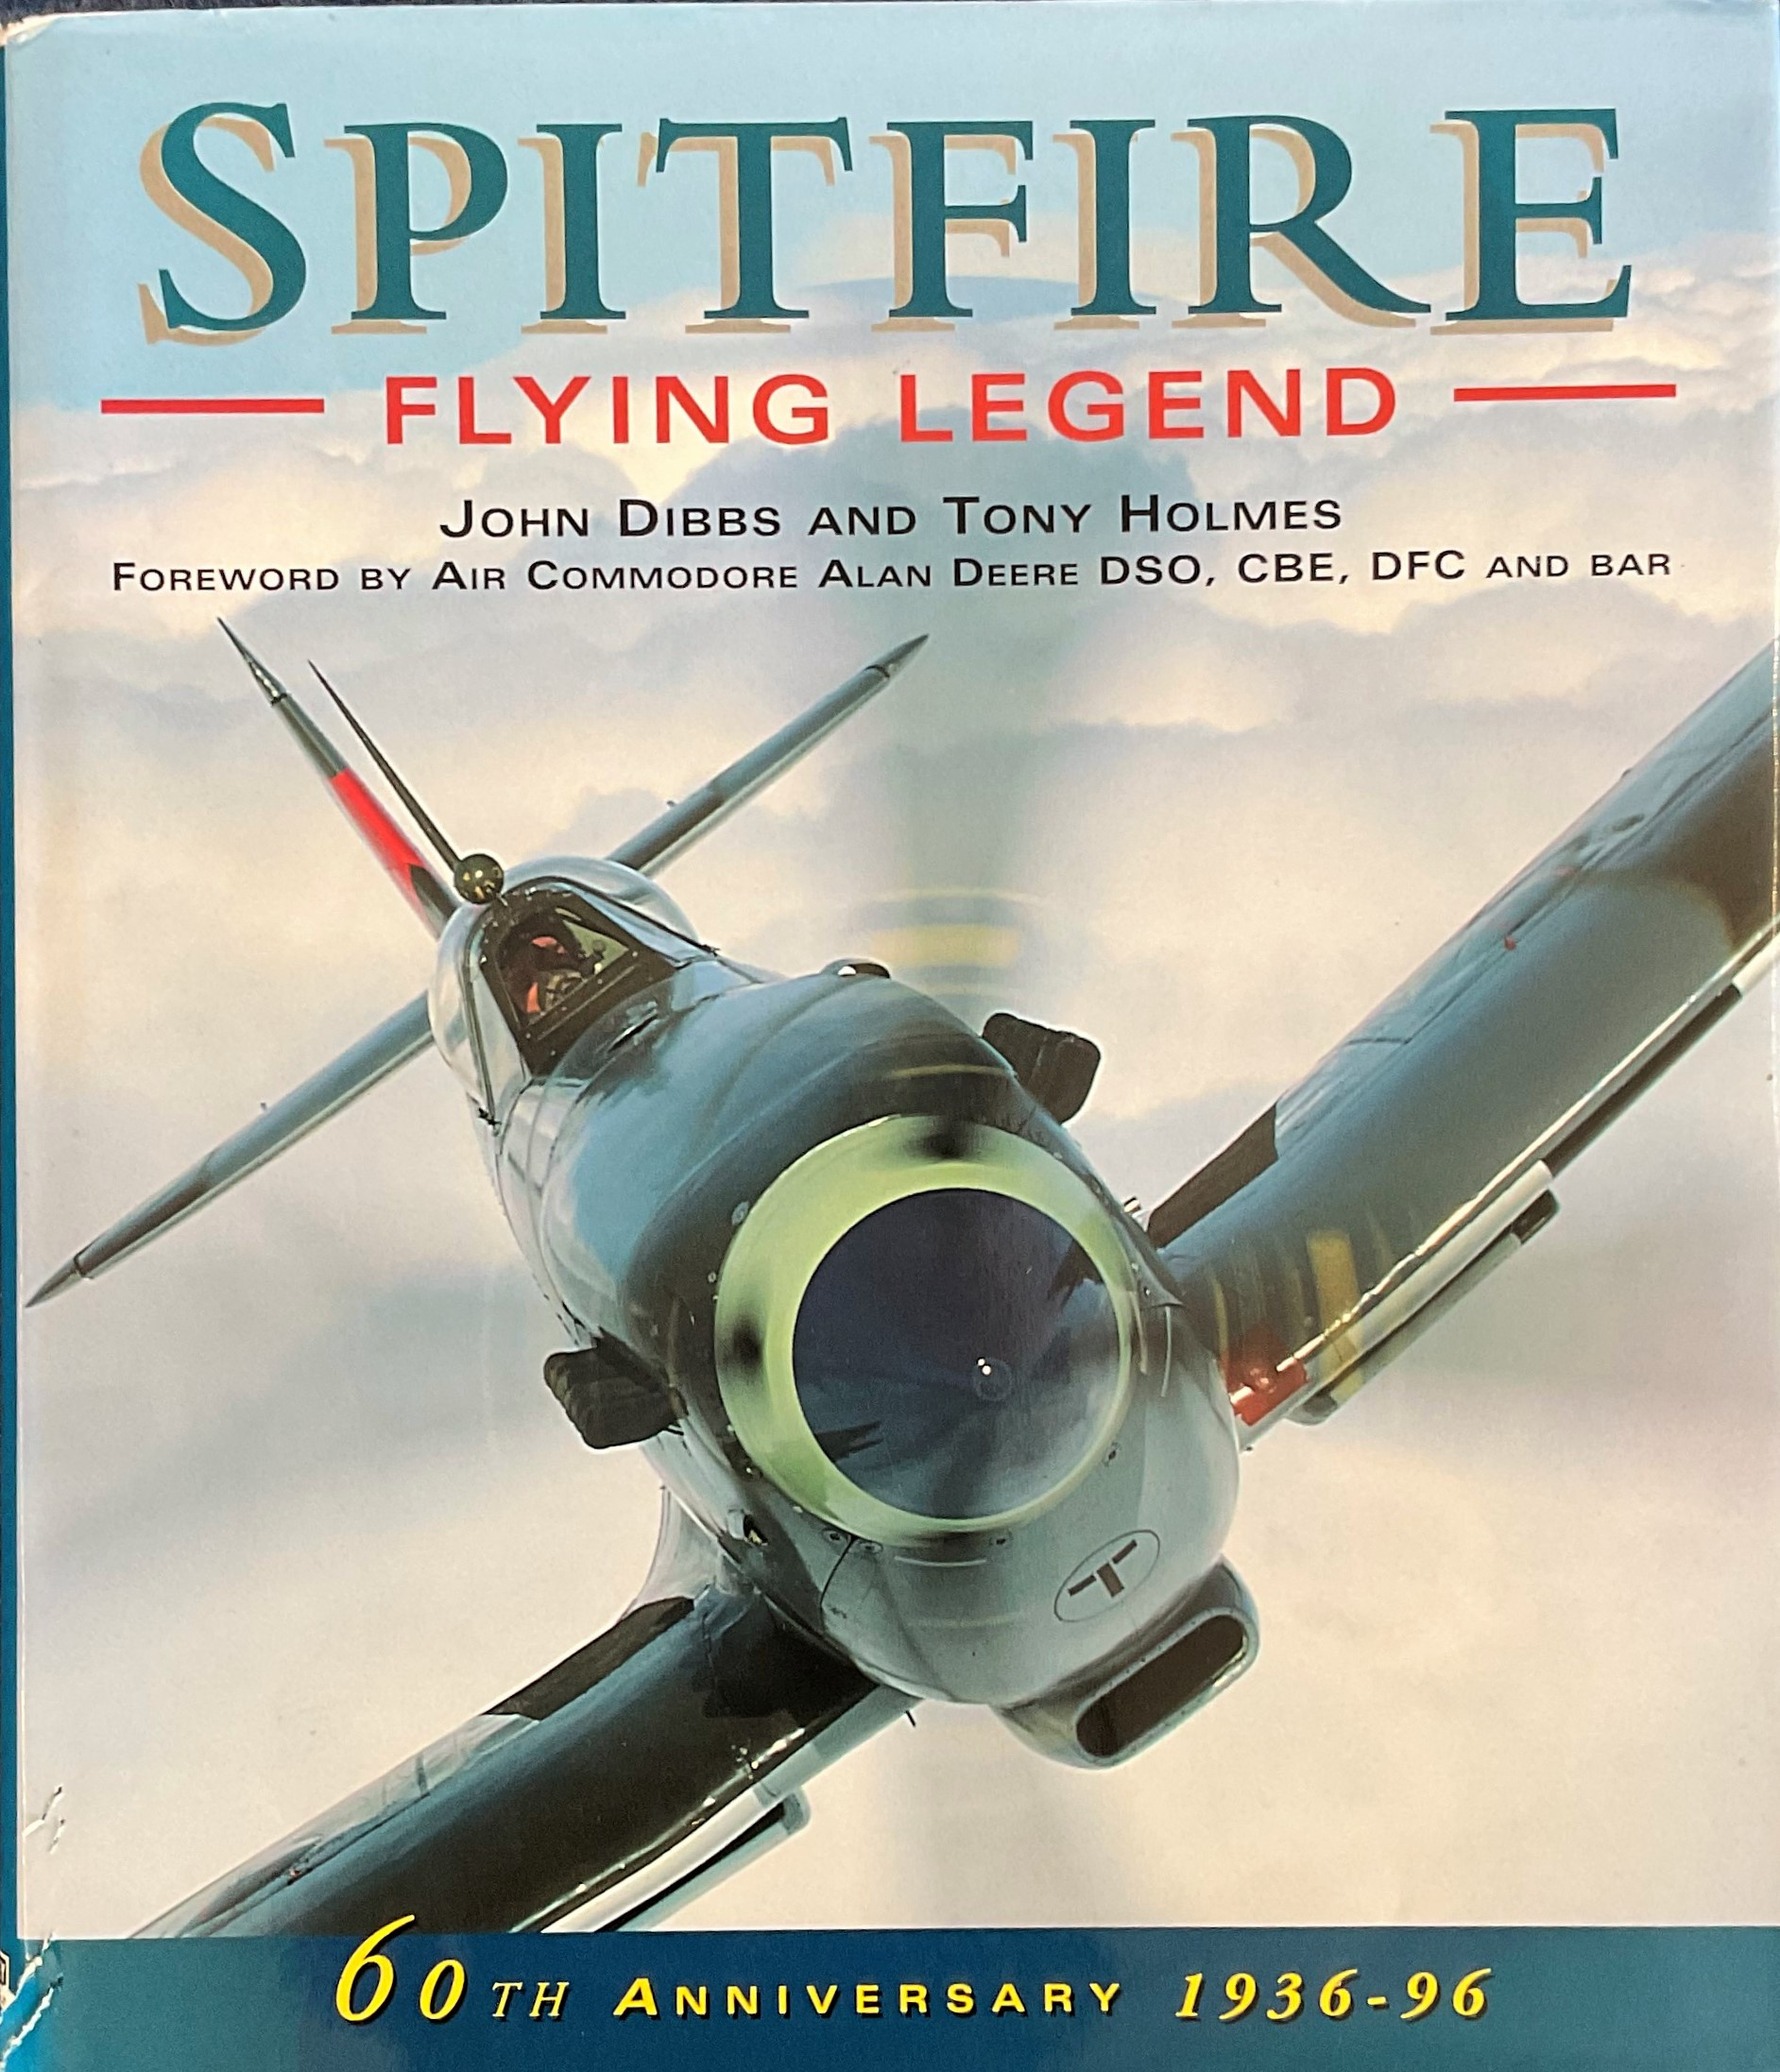 John Dibbs and Tony Holmes. Spitfire Flying Legend. 60th anniversary 1936 96. Second Edition